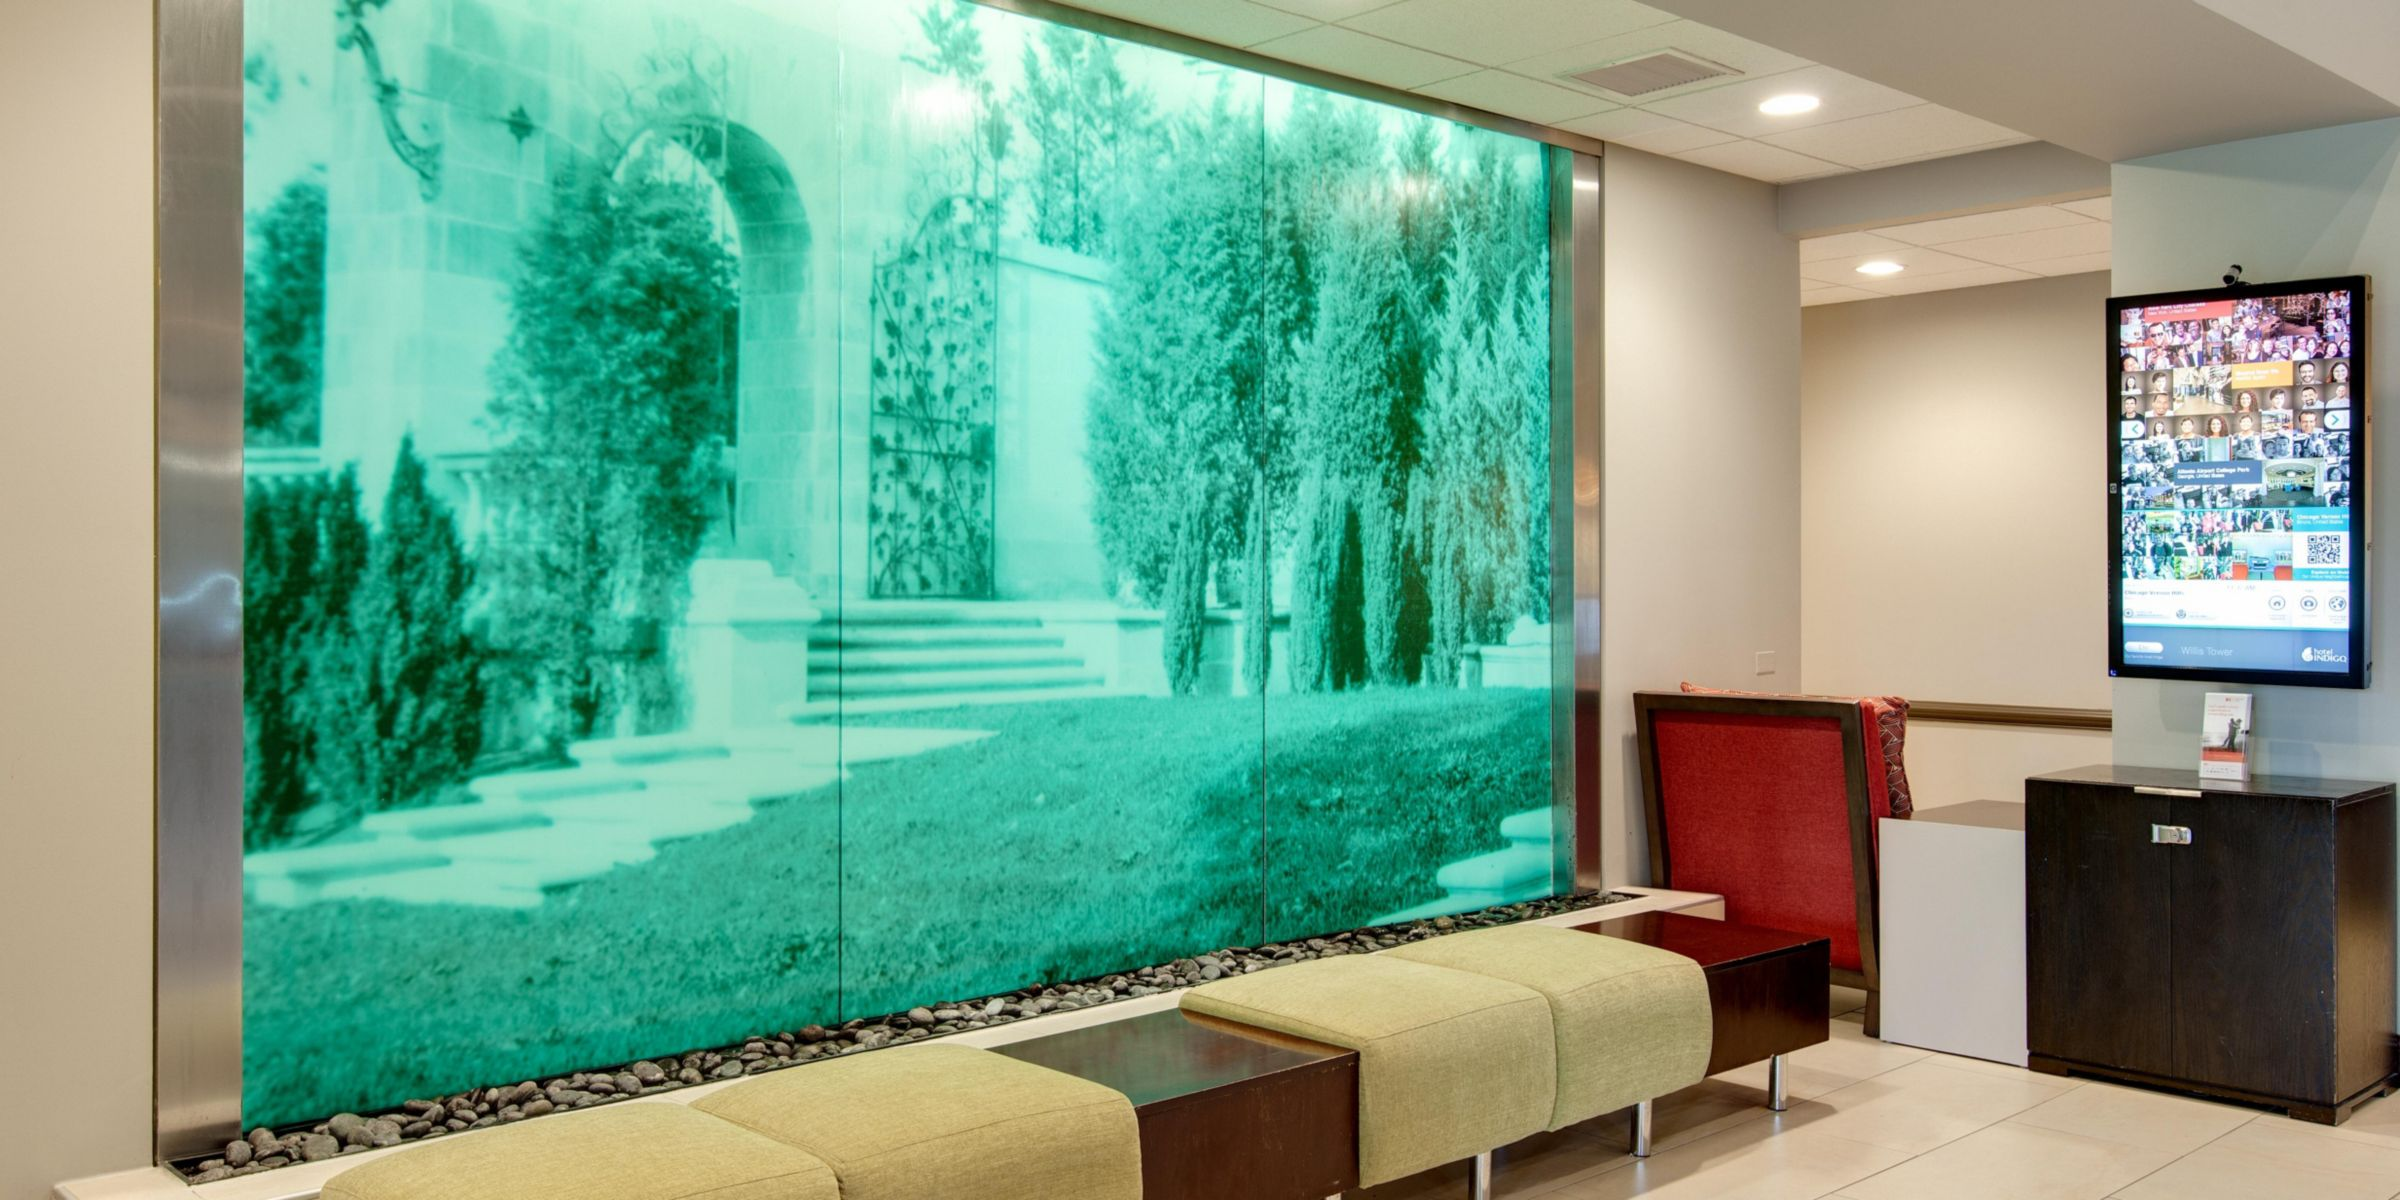 Front Desk Hotel Exterior Lobby Soothing Water Fall